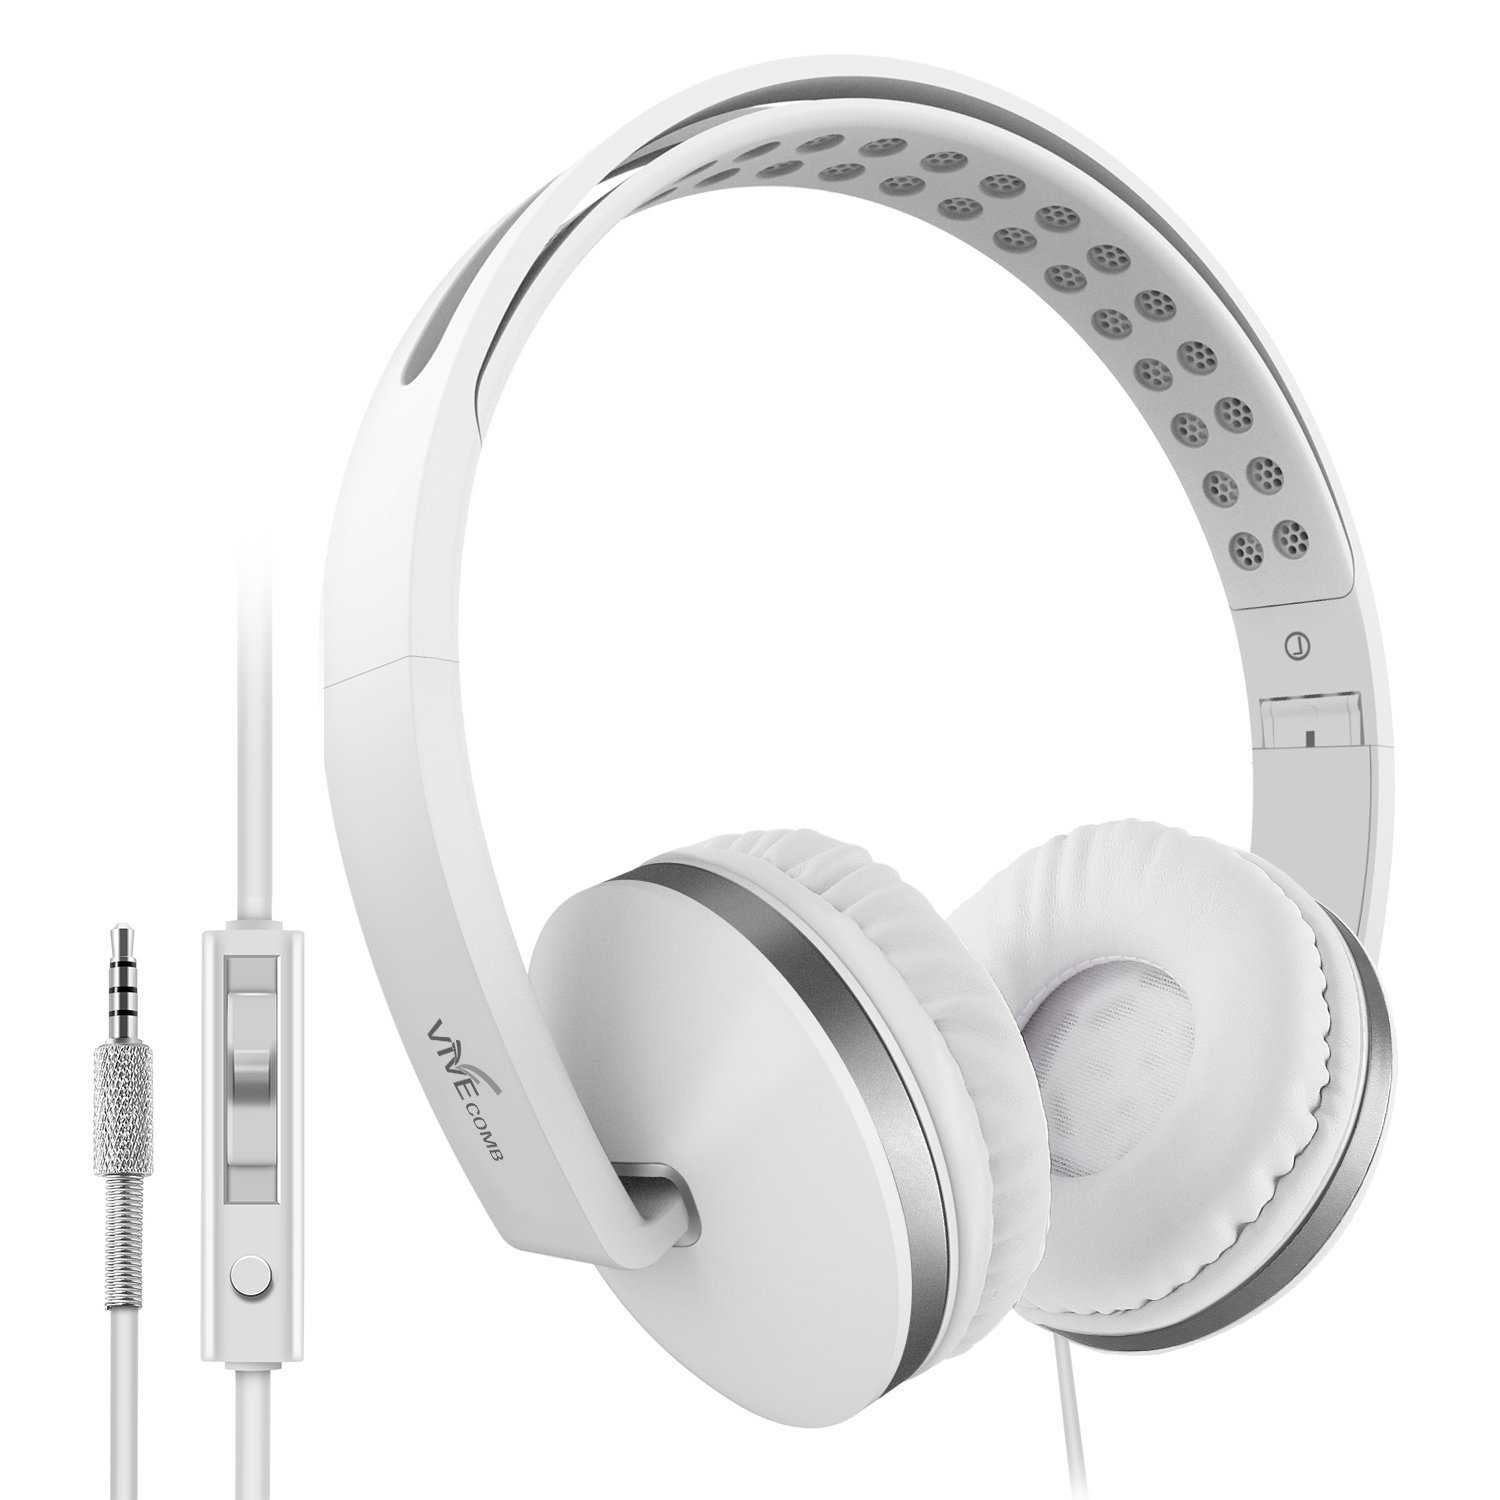 Foldable Headphones with Microphone, Vive Comb Stereo Lightweight Adjustable PC Headset Wired Headphones with Volume Control for Tablet, Smartphones, Video Game, Laptop-White